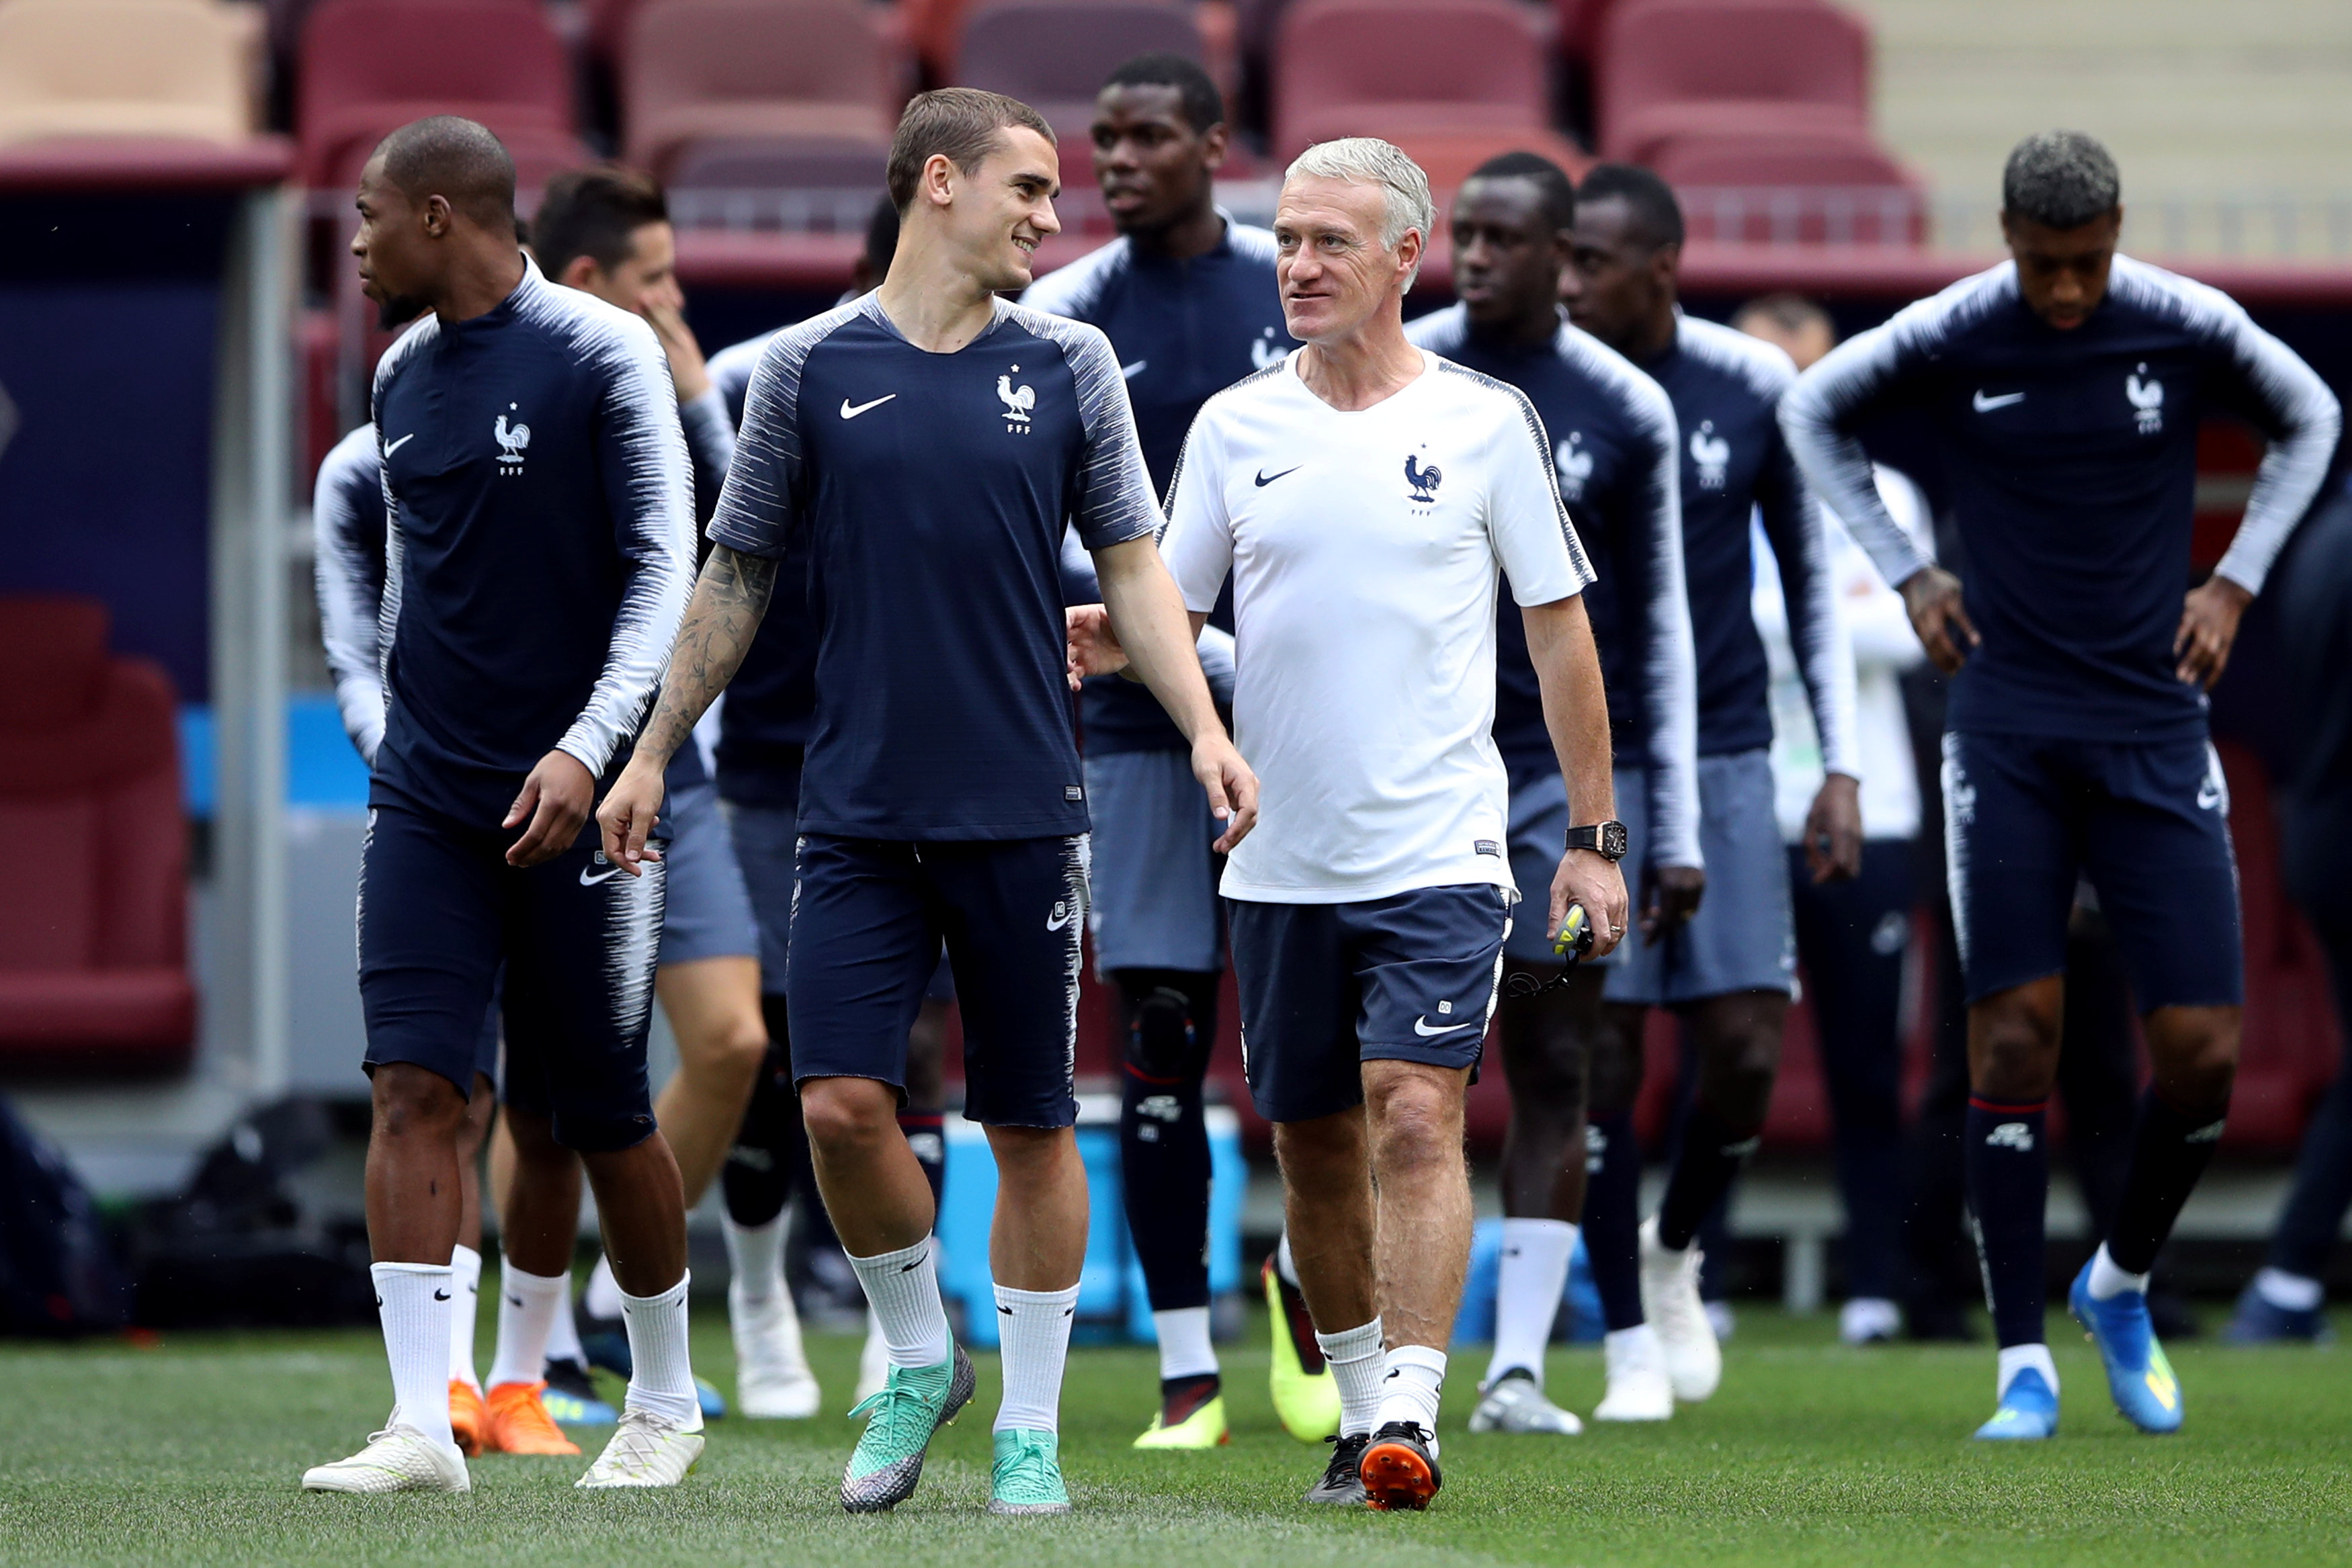 Football - Coupe du monde - Quels Bleus contre le Danemark ? Deschamps «brouille» les pistes